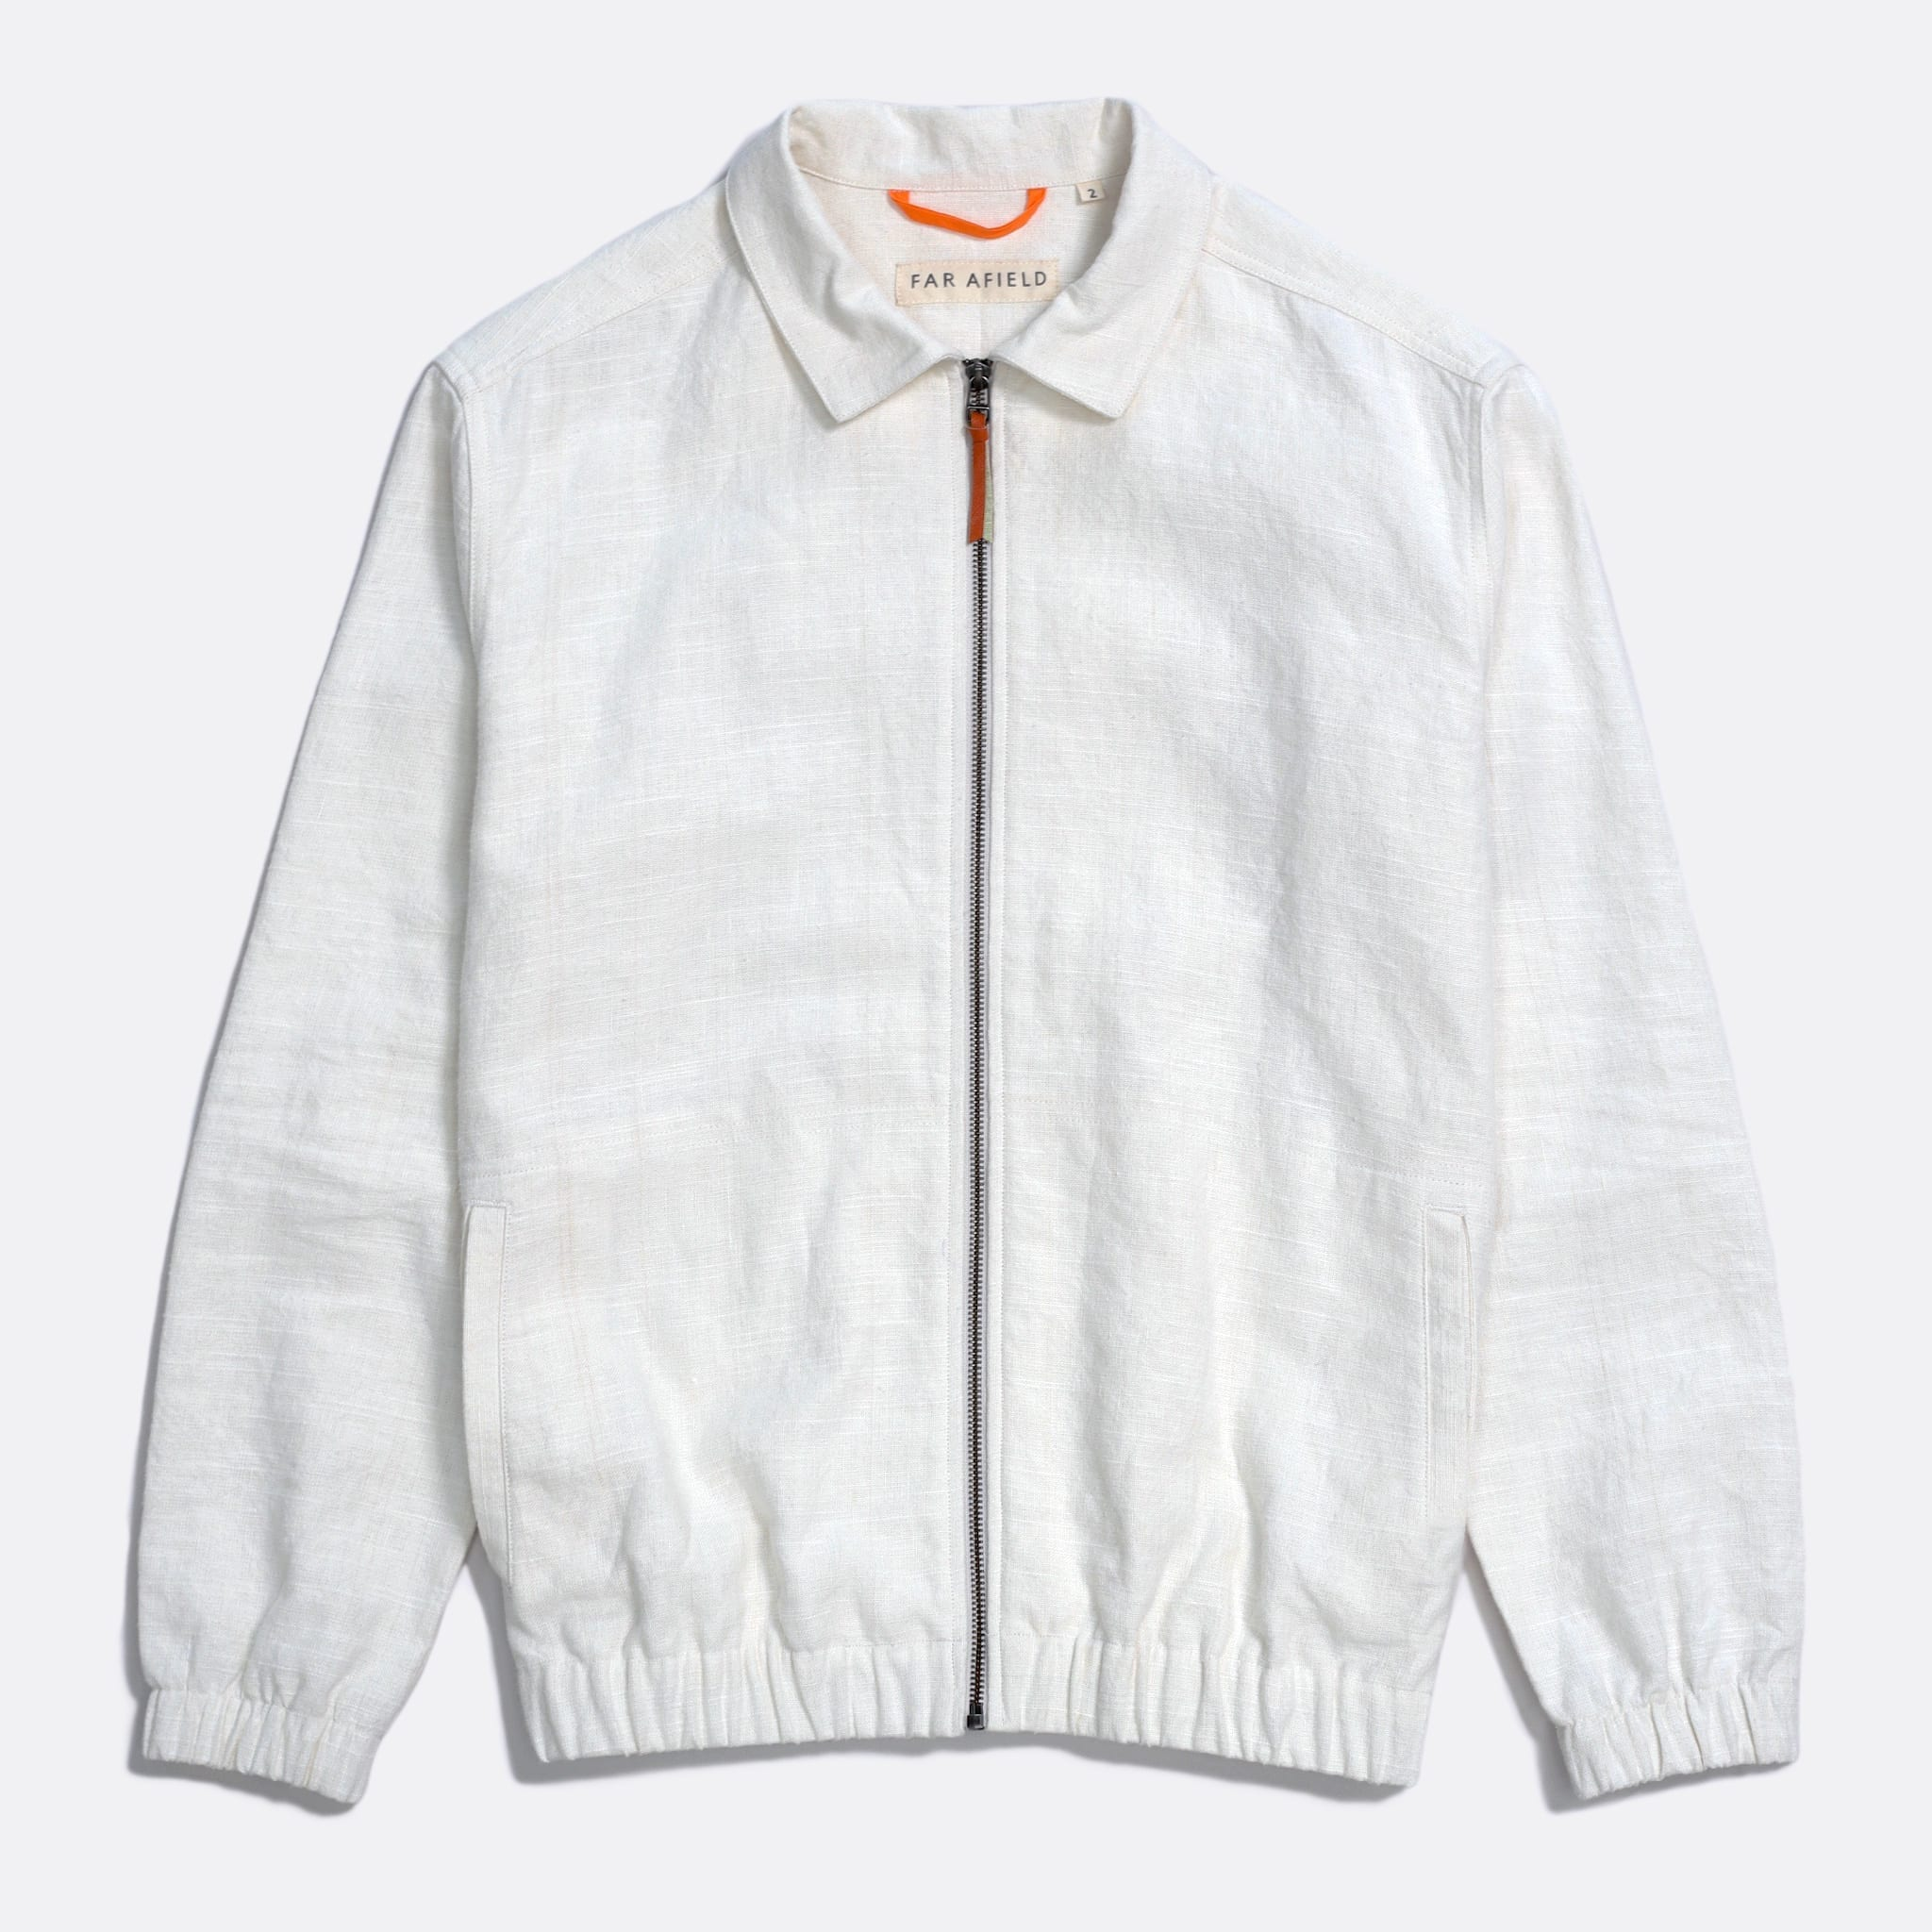 Far Afield Santana Jacket a White Sand Linen Fabric Lightweight Zip Retro Inspired